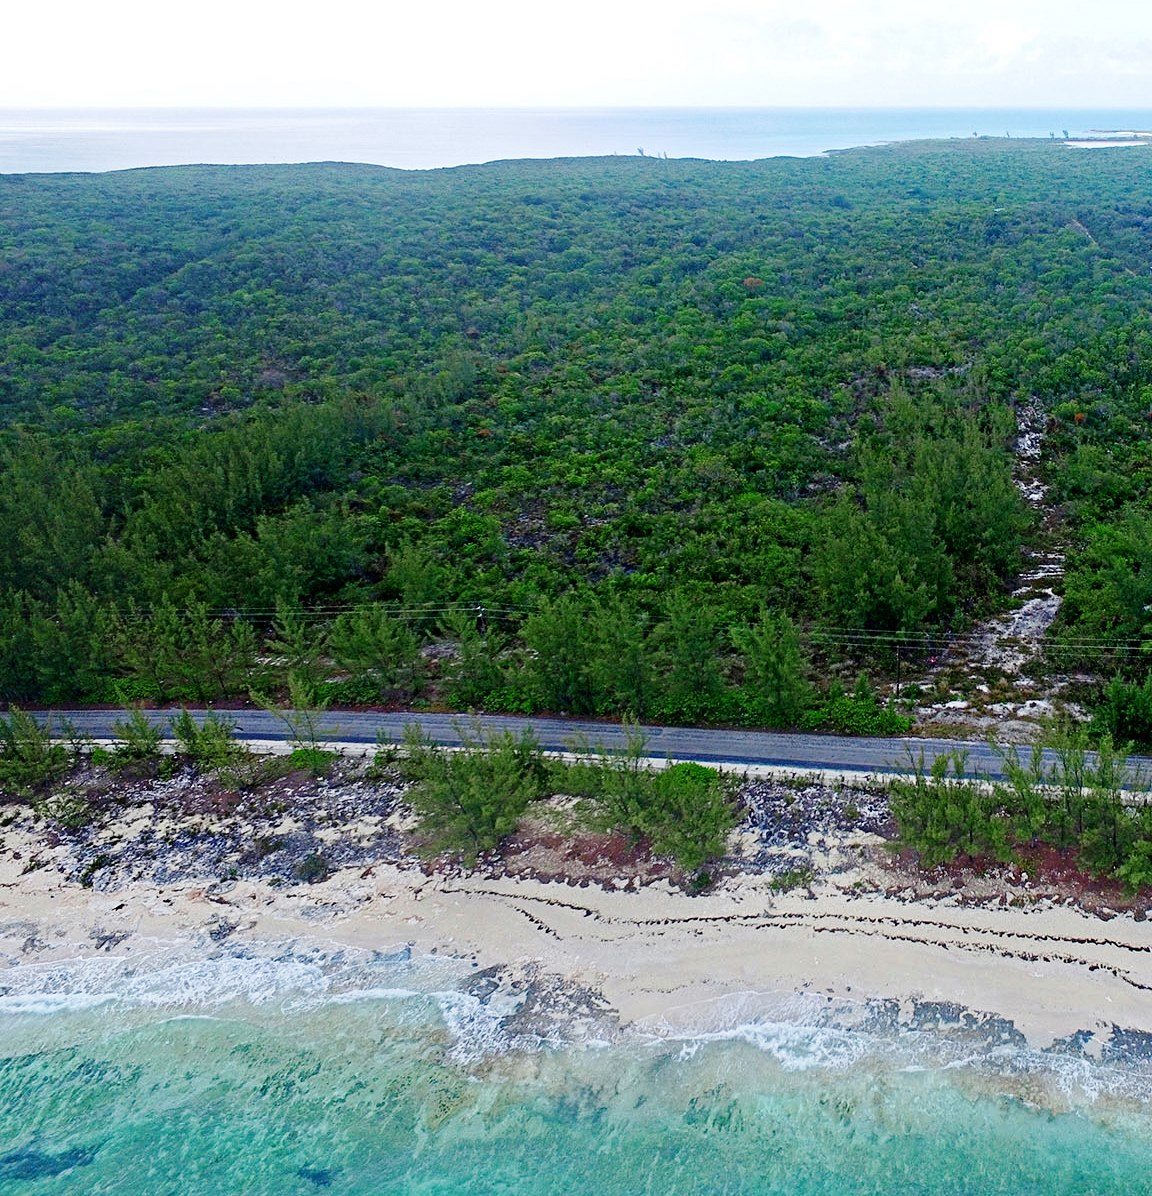 Land for Sale at Development Acreage, Central Eleuthera - Investment Opportunity - MLS 30517 James Cistern, Eleuthera, Bahamas